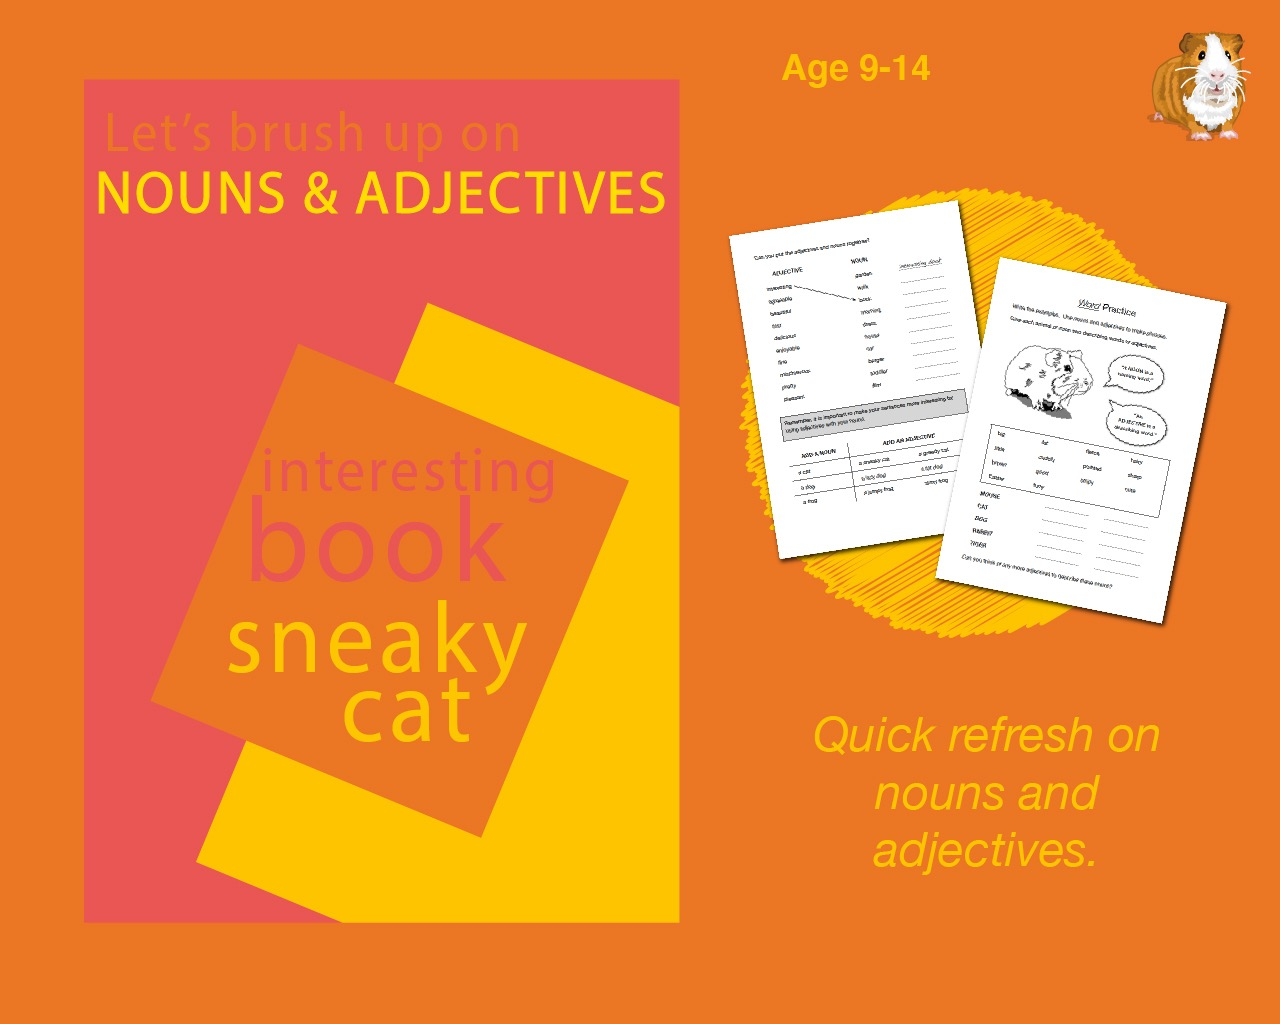 Using Nouns And Adjectives (9-14 years)